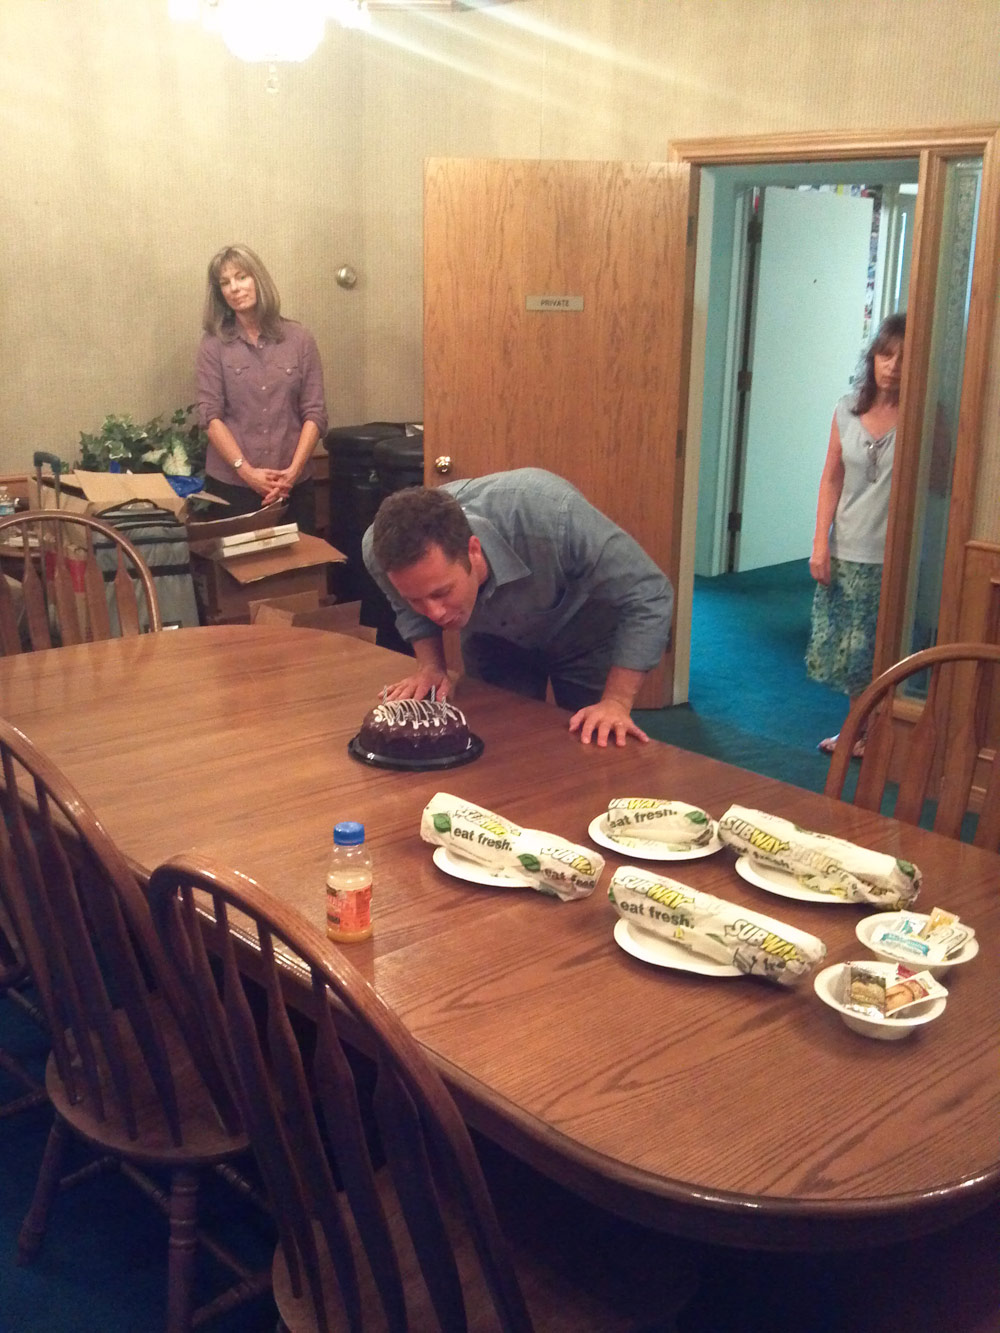 Kirk Cameron shares sad birthday